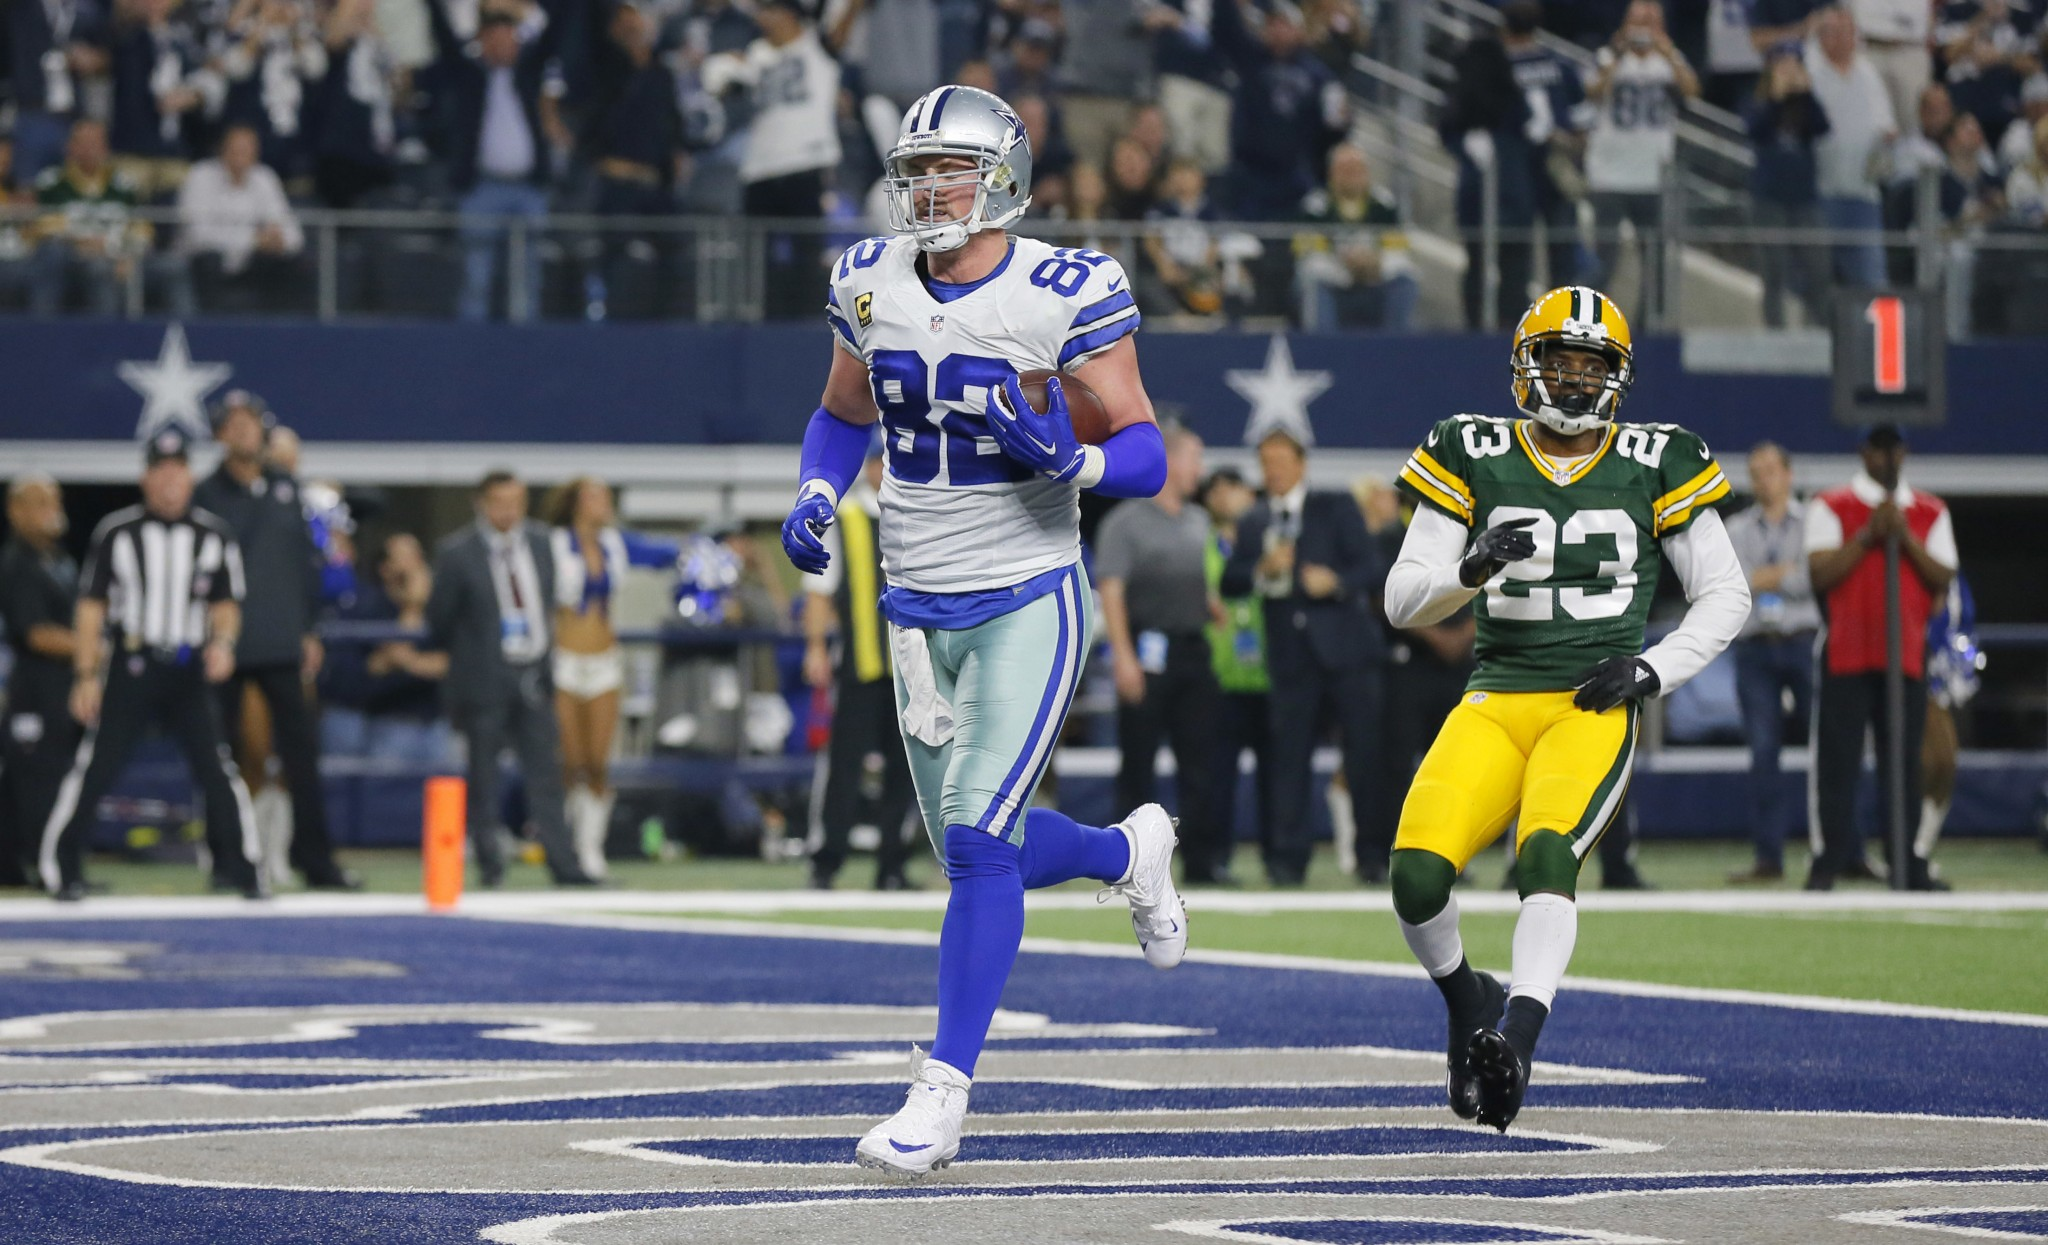 34-year-old Jason Witten signs 4-year extension with Cowboys